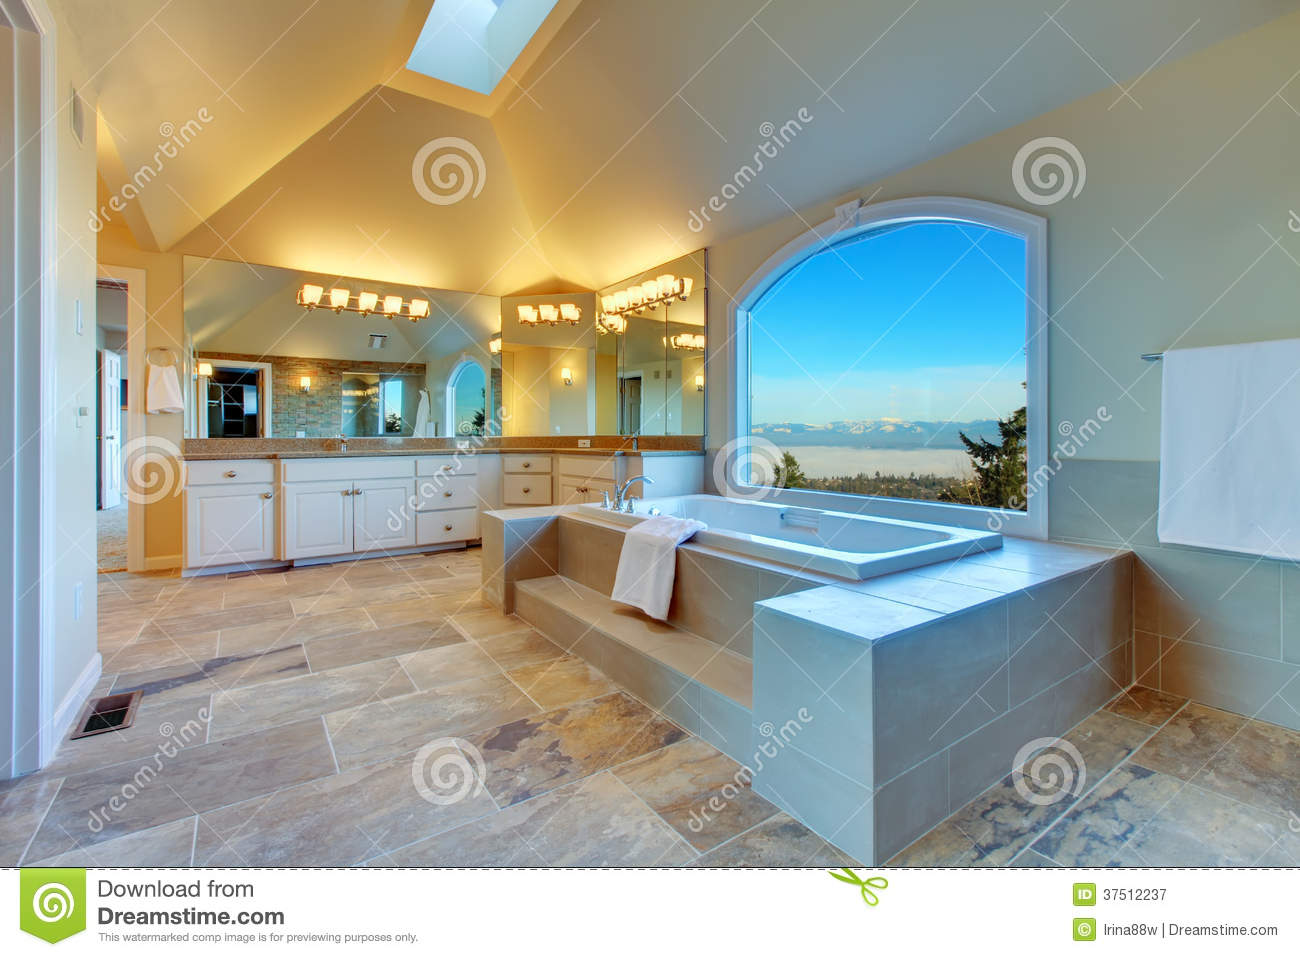 Luxuriant Bathroom With Whirlpool And Amazing Window View Stock ...